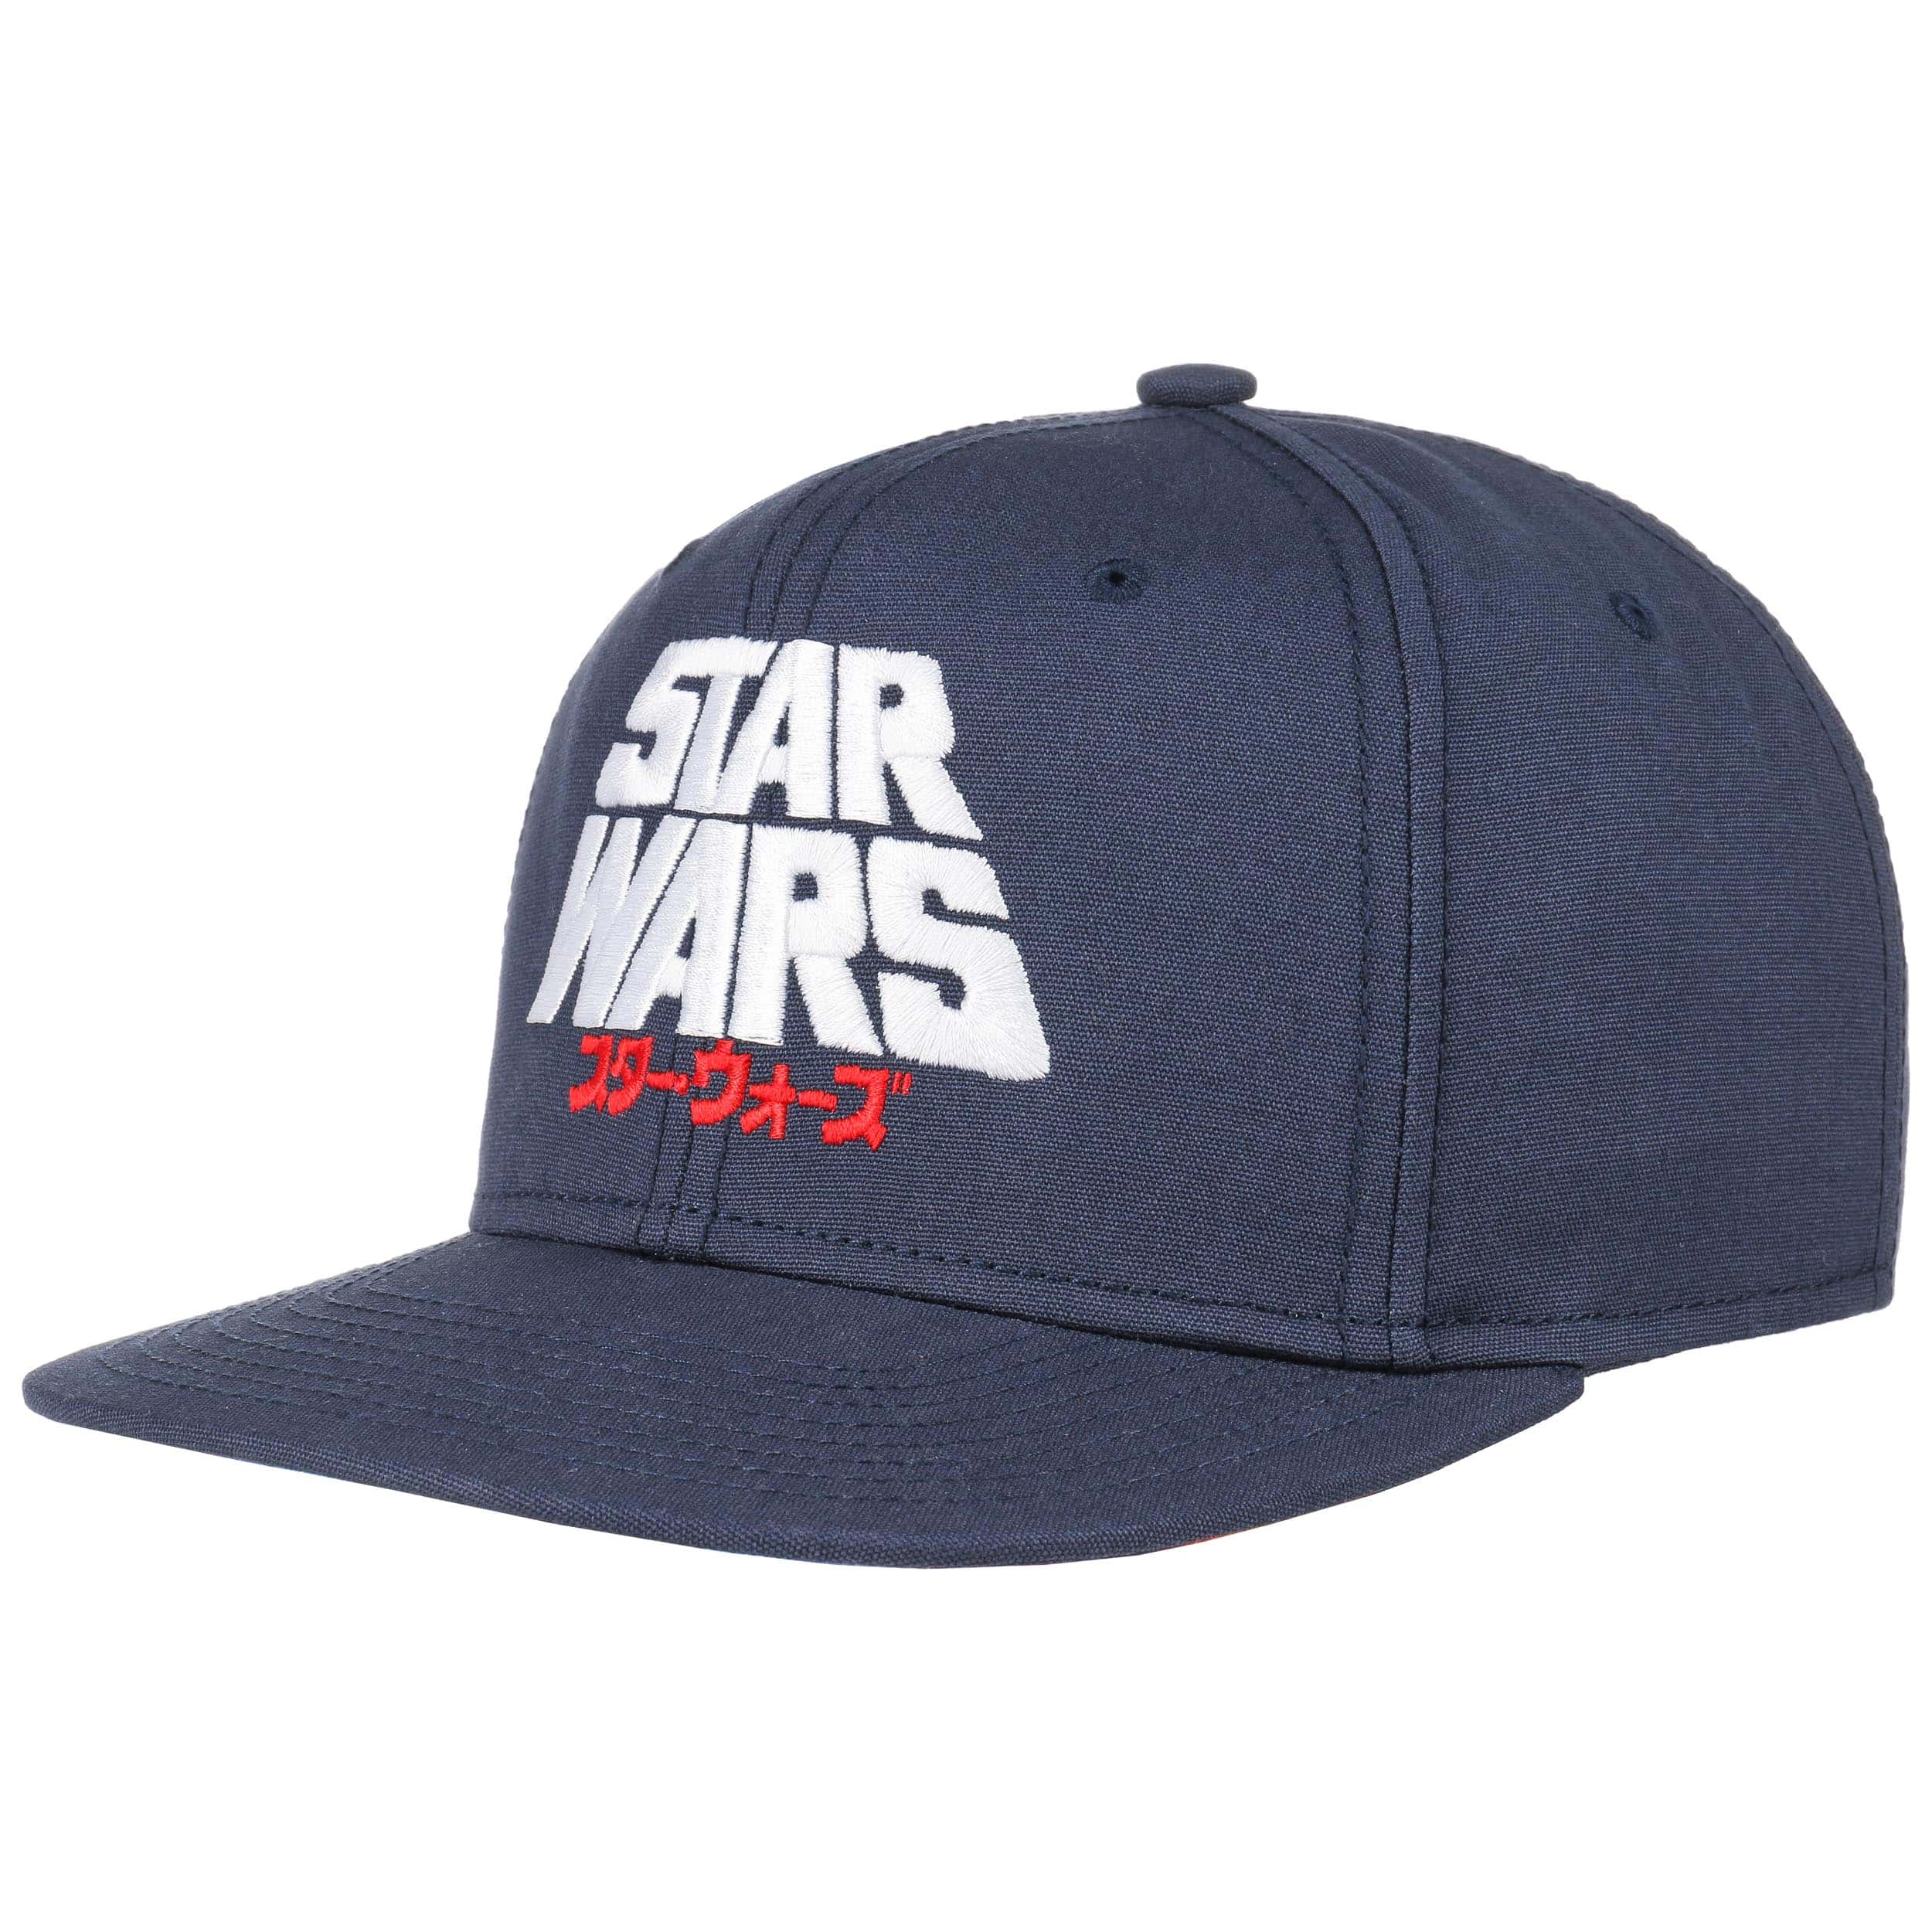 Star Wars Nippon Snapback Cap by dedicated a16cc30f1c6